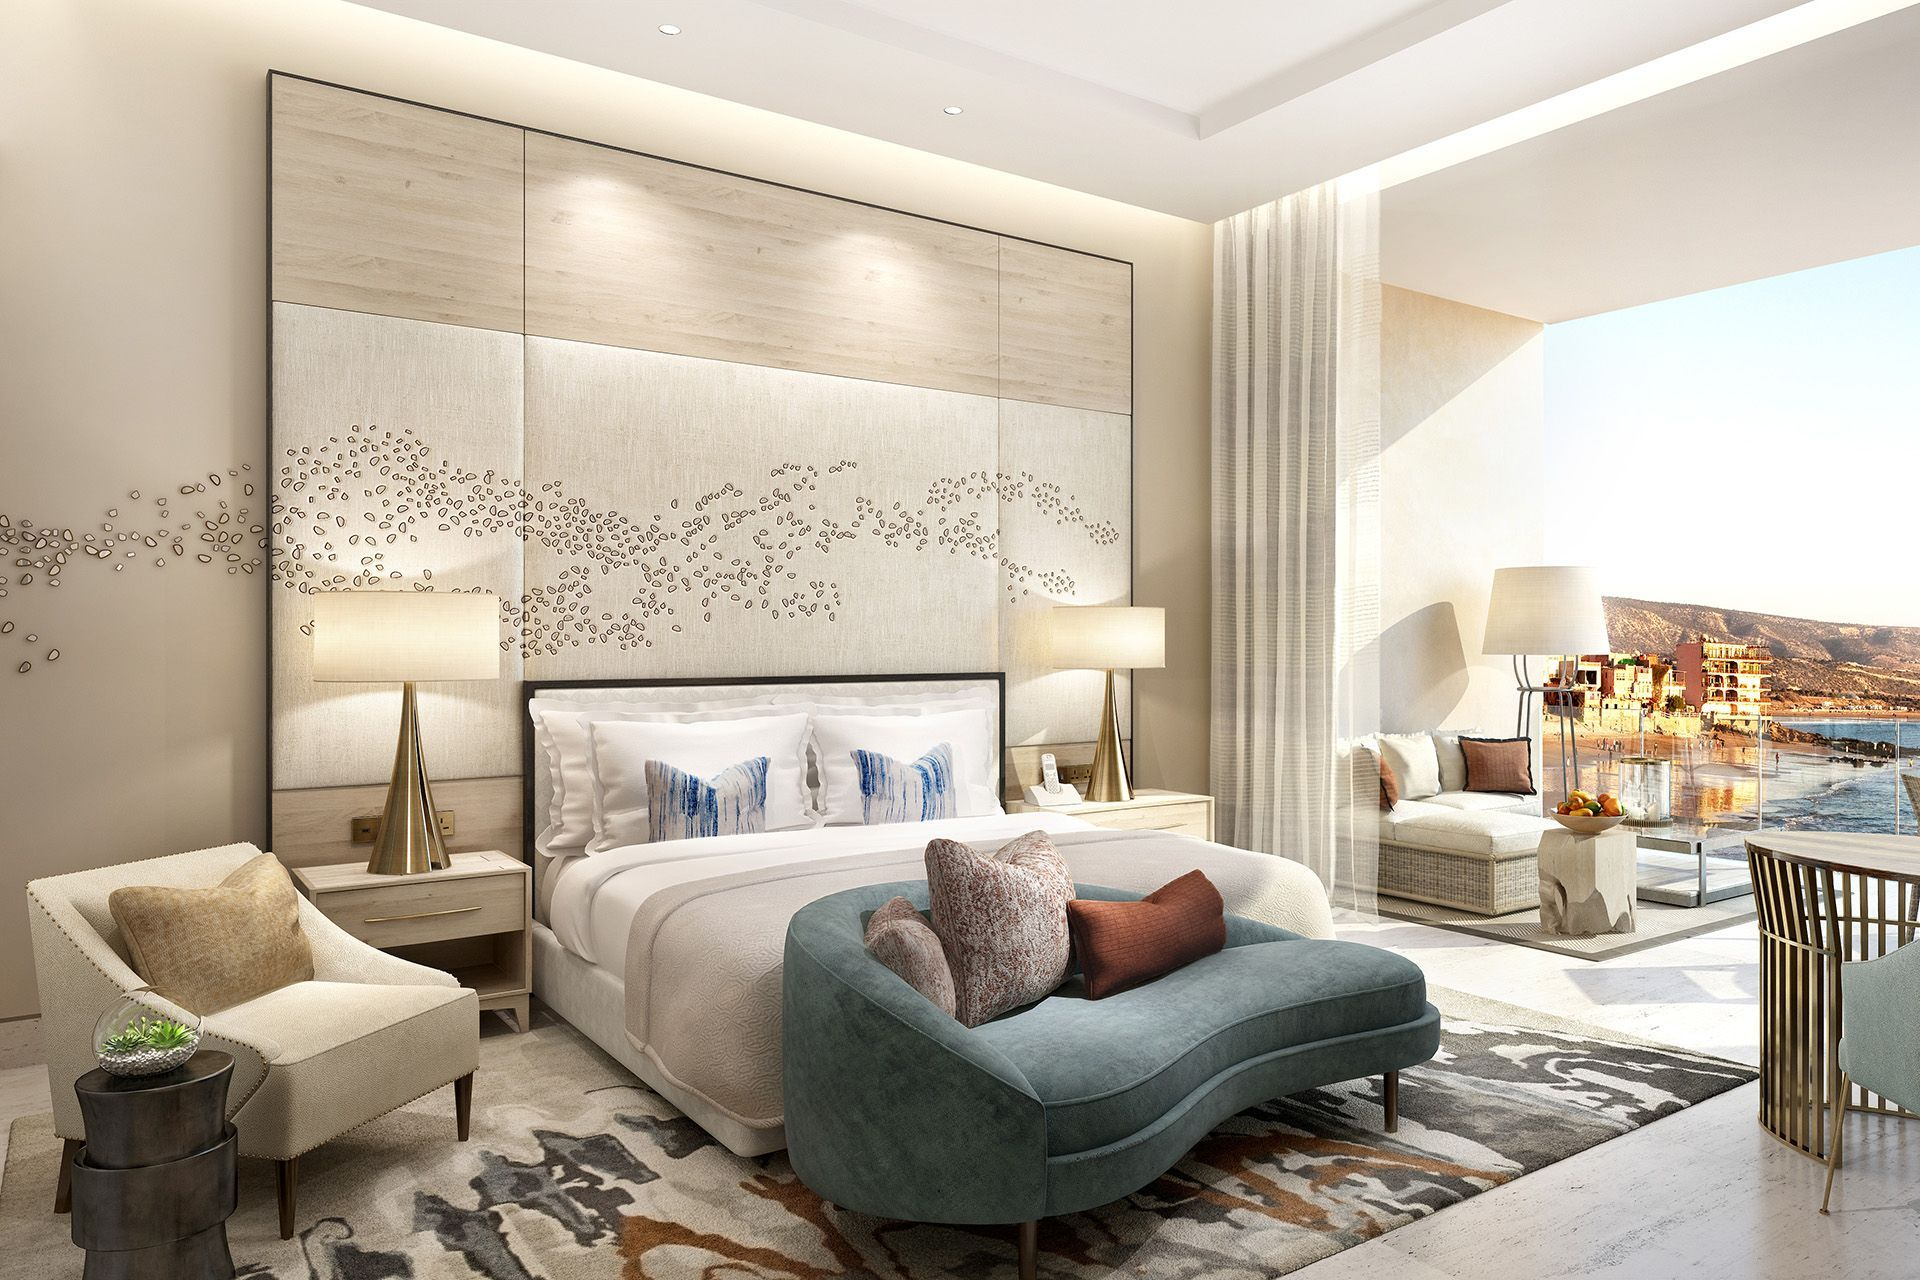 Four seasons taghazout interior designers wimberly for Bedroom room decor